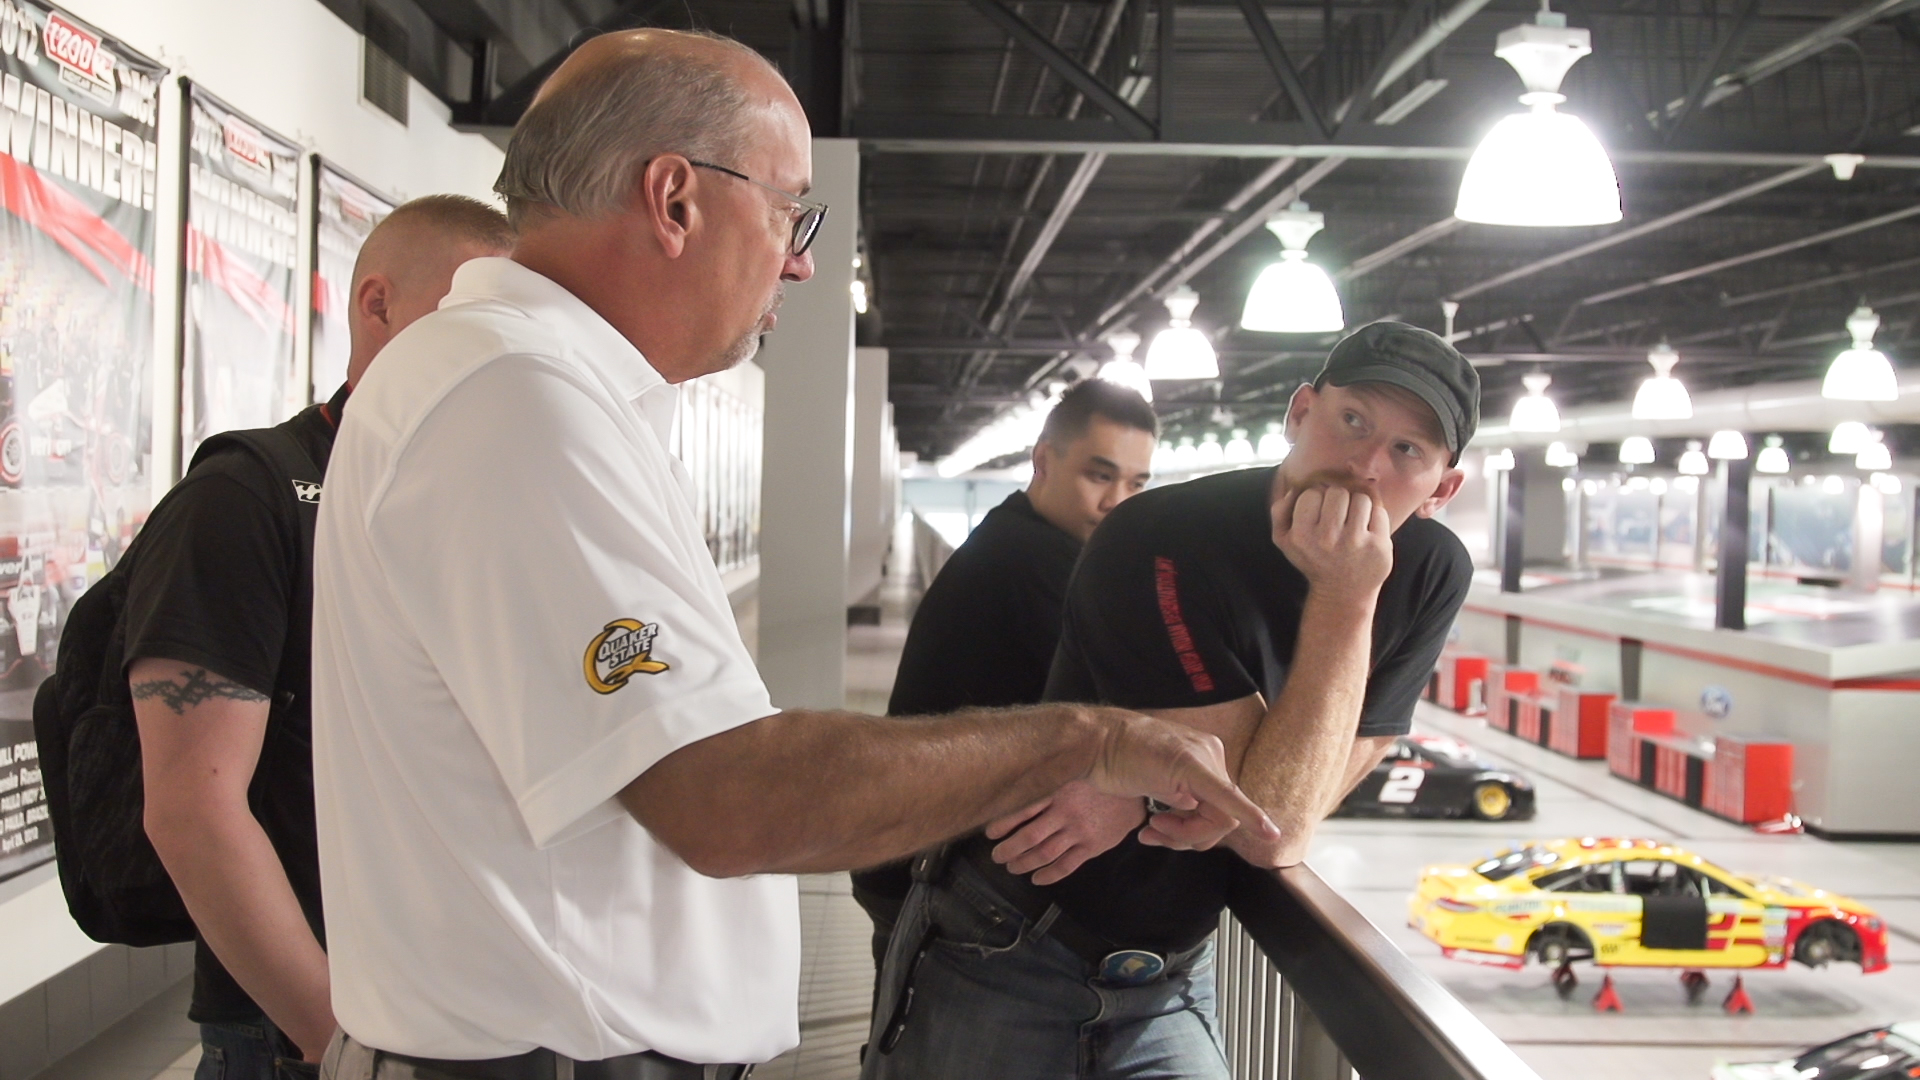 The digital influencers learn about Pennzoil technology in motorsports.